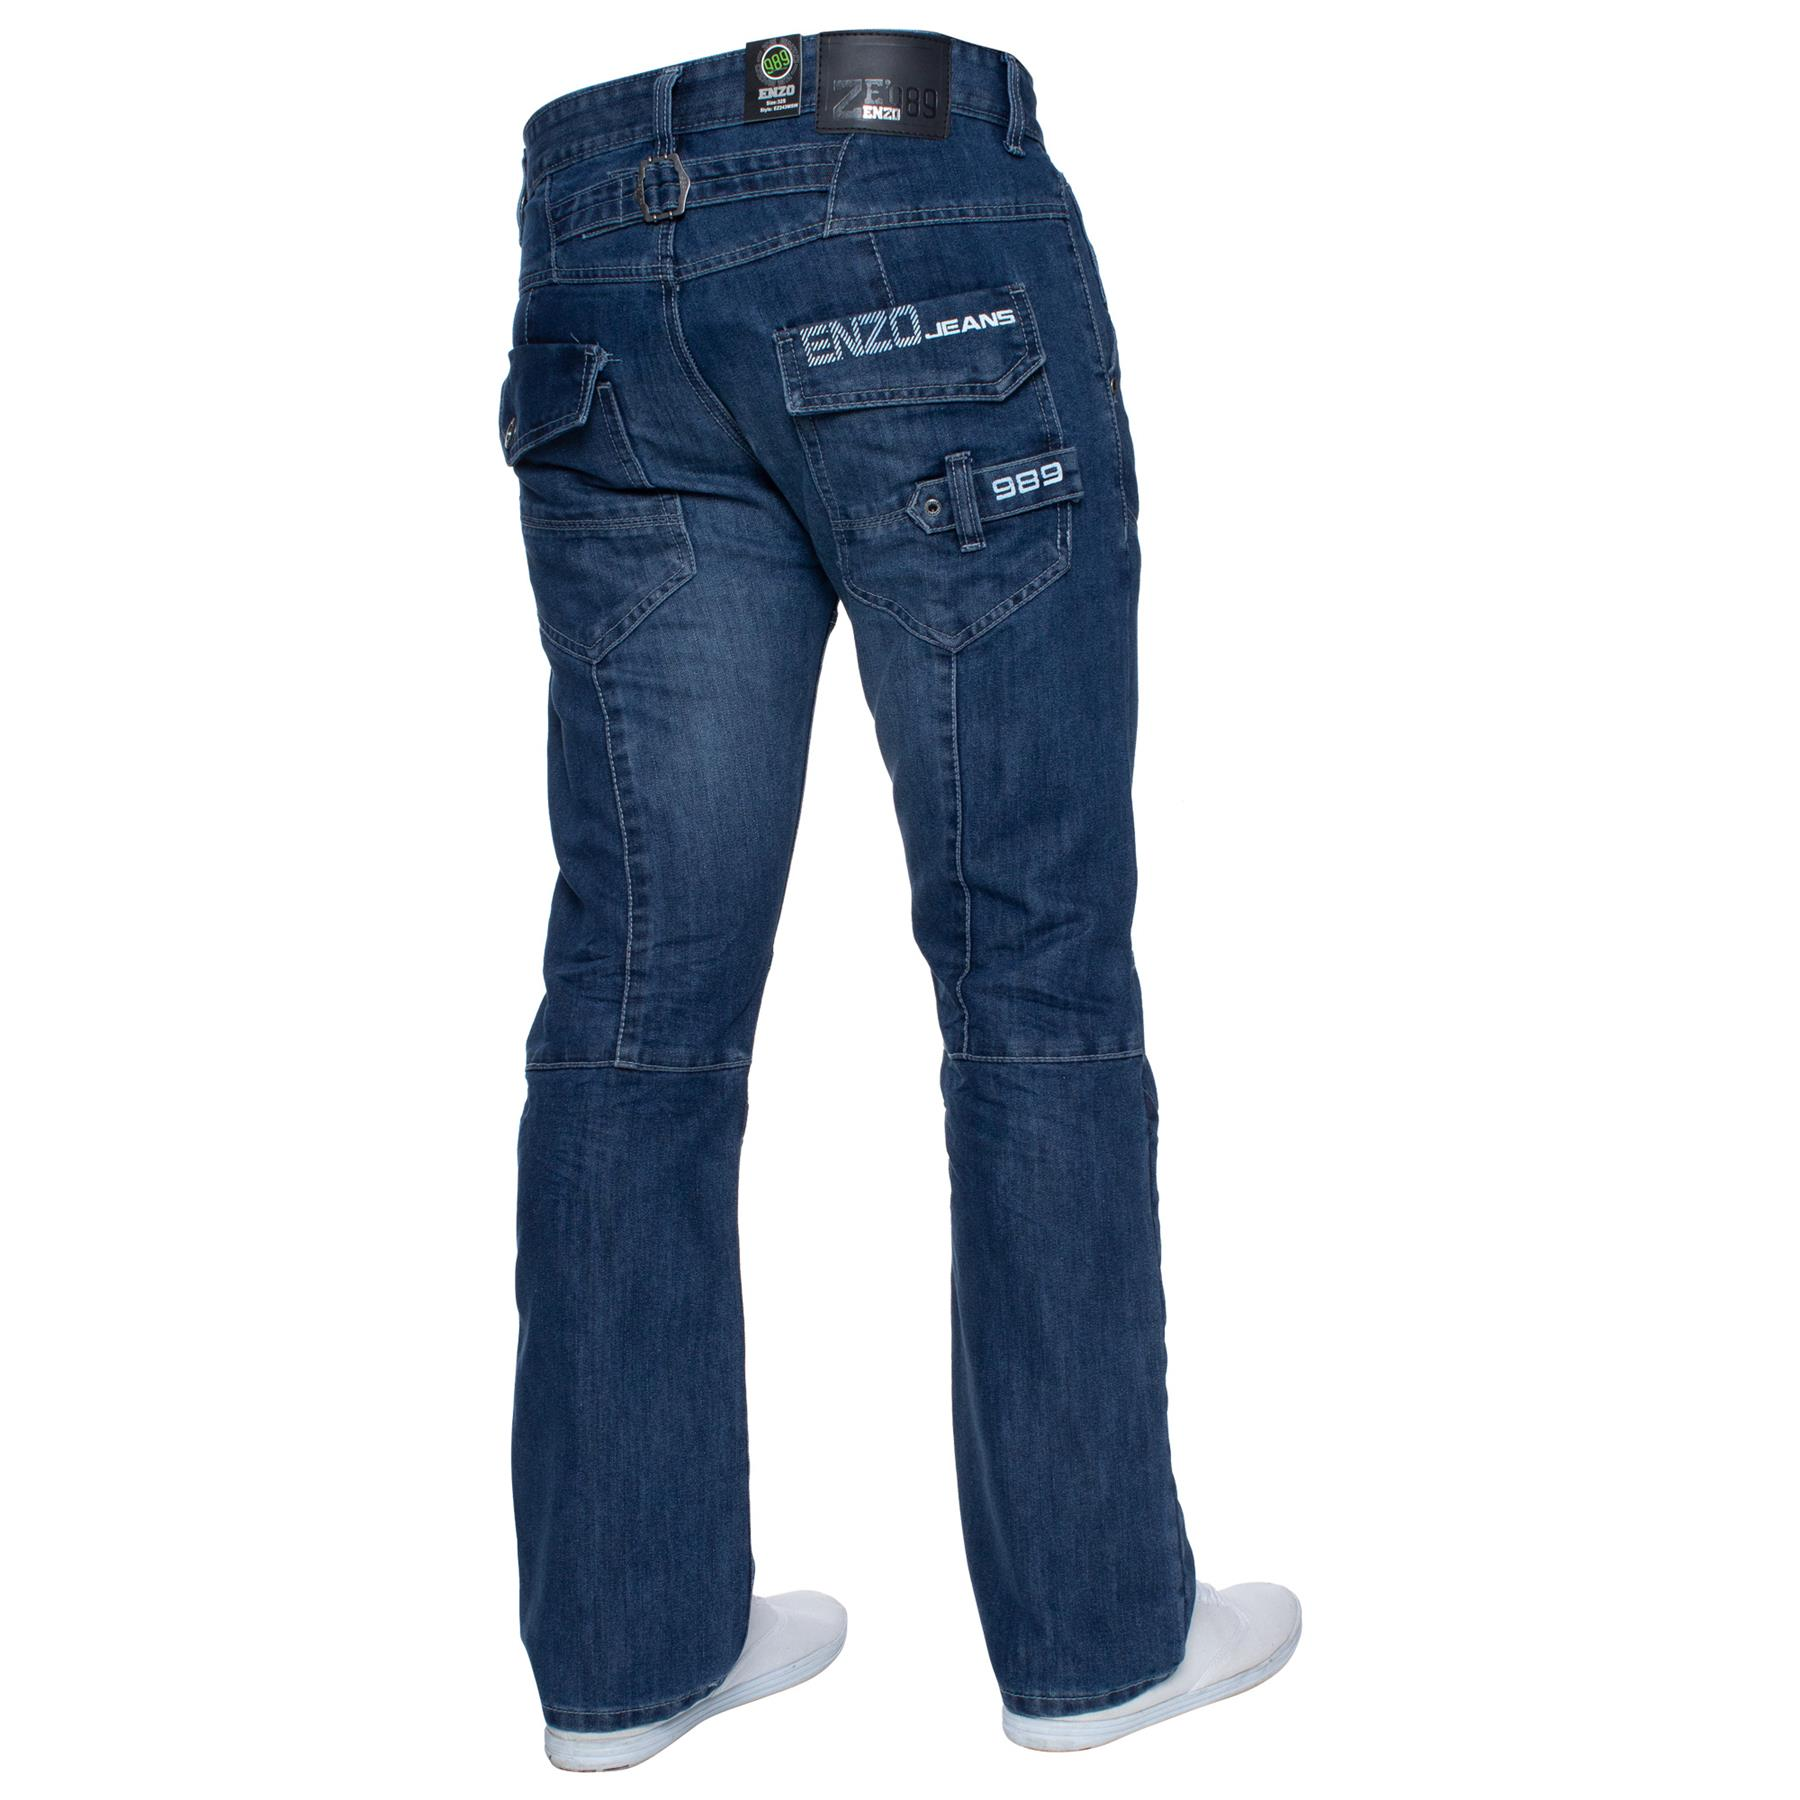 Enzo-Mens-Jeans-Big-Tall-Leg-King-Size-Denim-Pants-Chino-Trousers-Waist-44-034-60-034 miniature 98